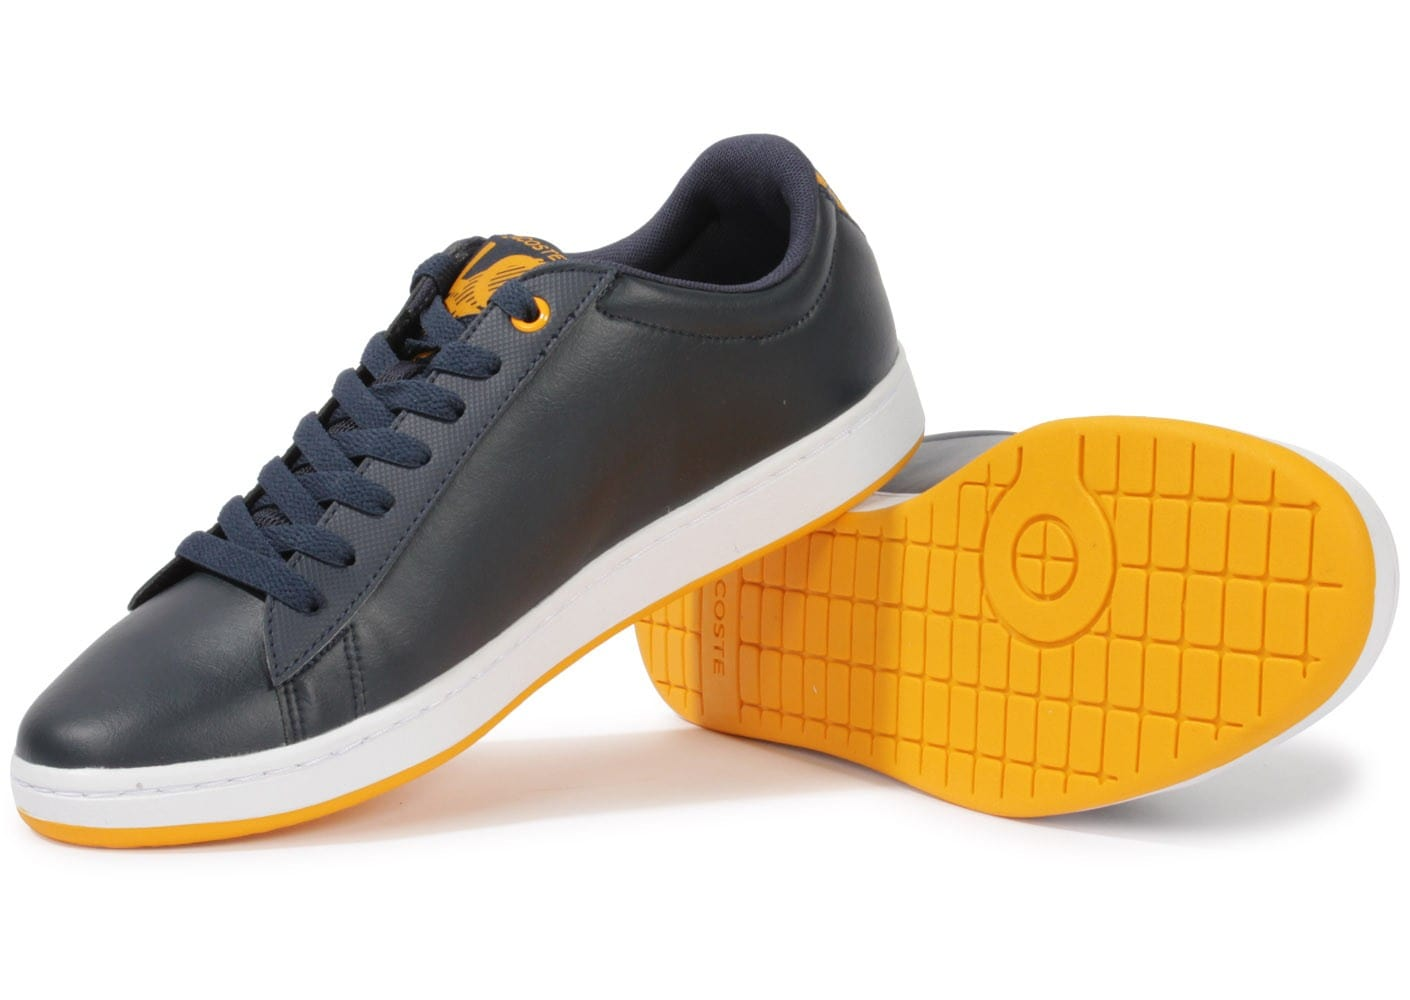 Lacoste carnaby evo bleu marine chaussures homme chausport - Lacoste carnaby evo cls baskets en cuir perfore ...